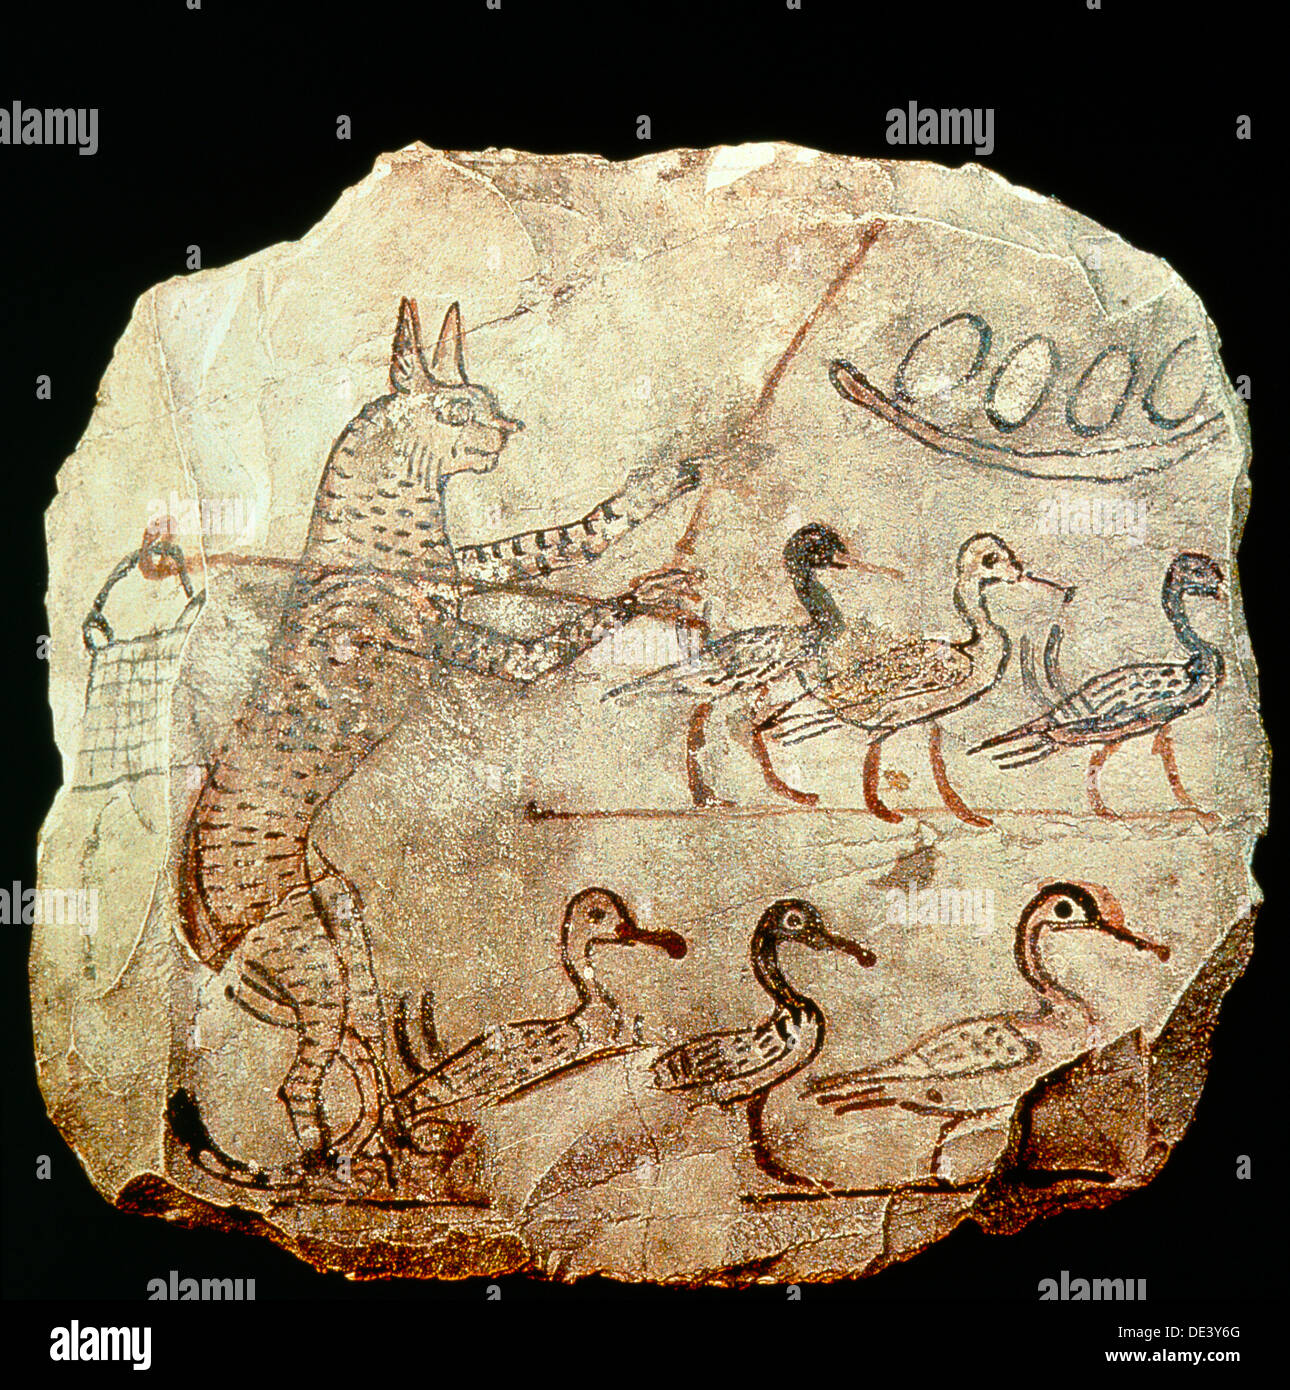 A drawing on limestone of a scene from a fable. - Stock Image